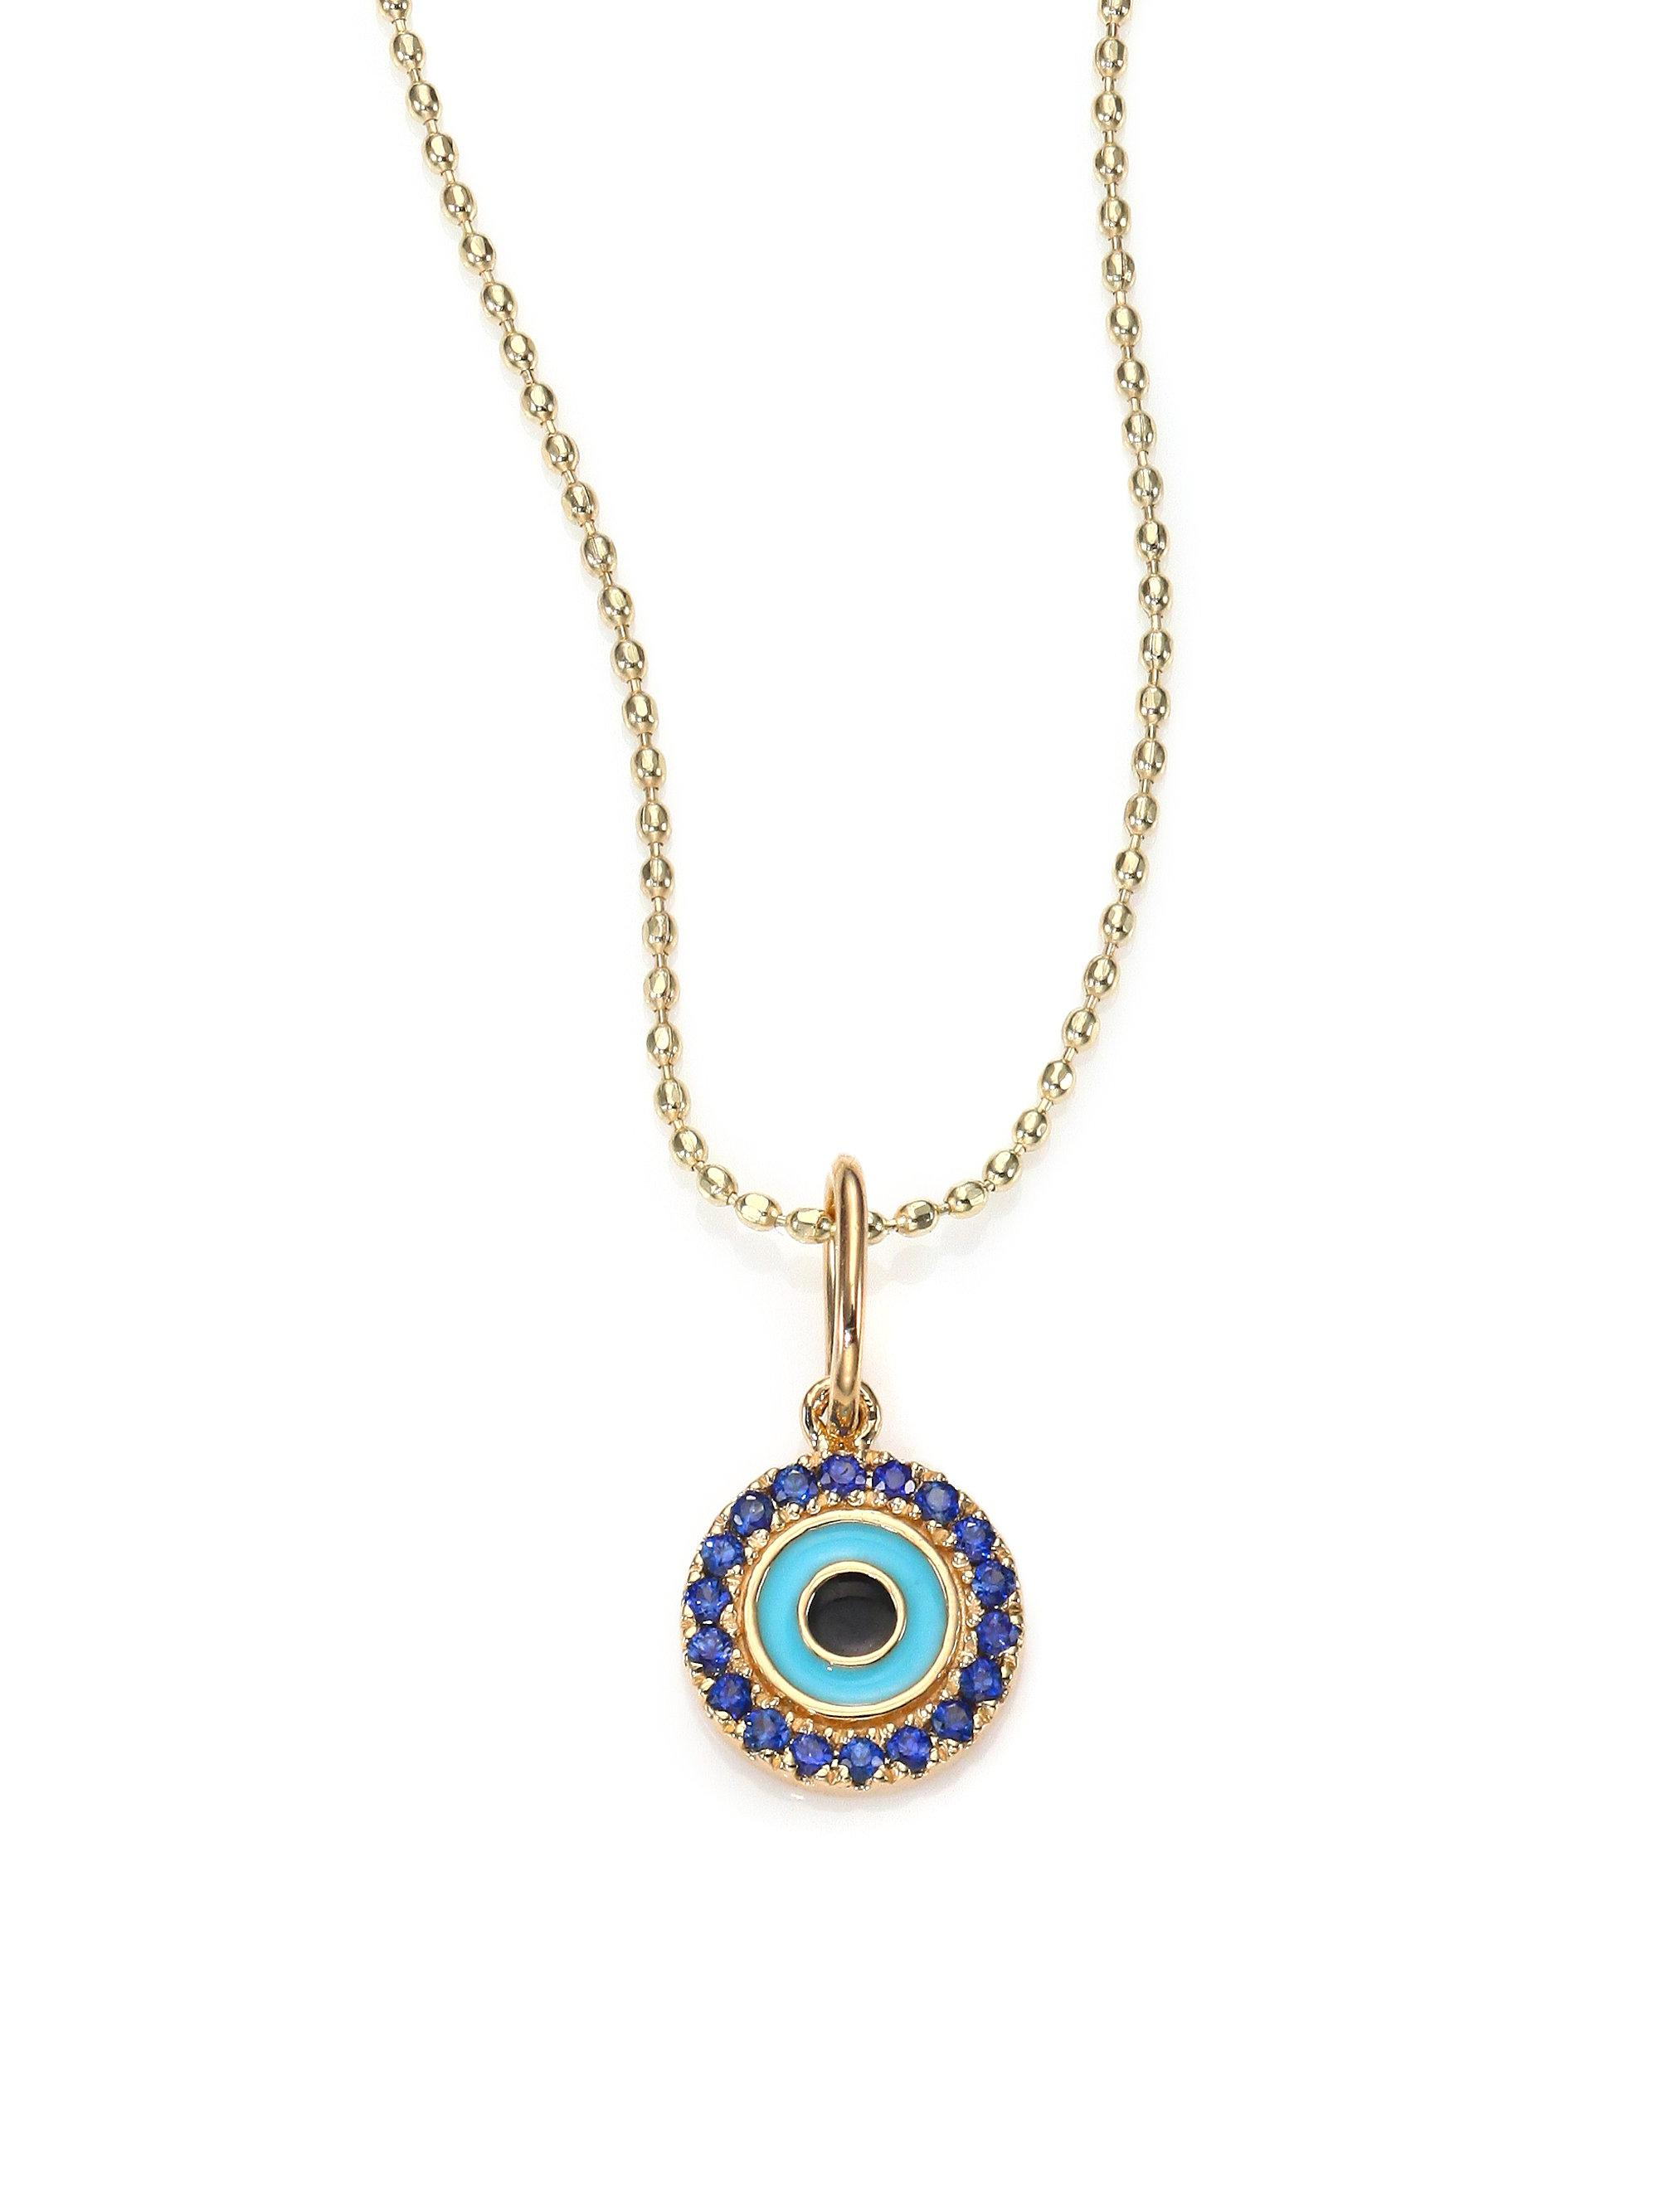 Sydney Evan Small Turquoise Cabochon Evil Eye Pendant Necklace w/Sapphires Jy4XR